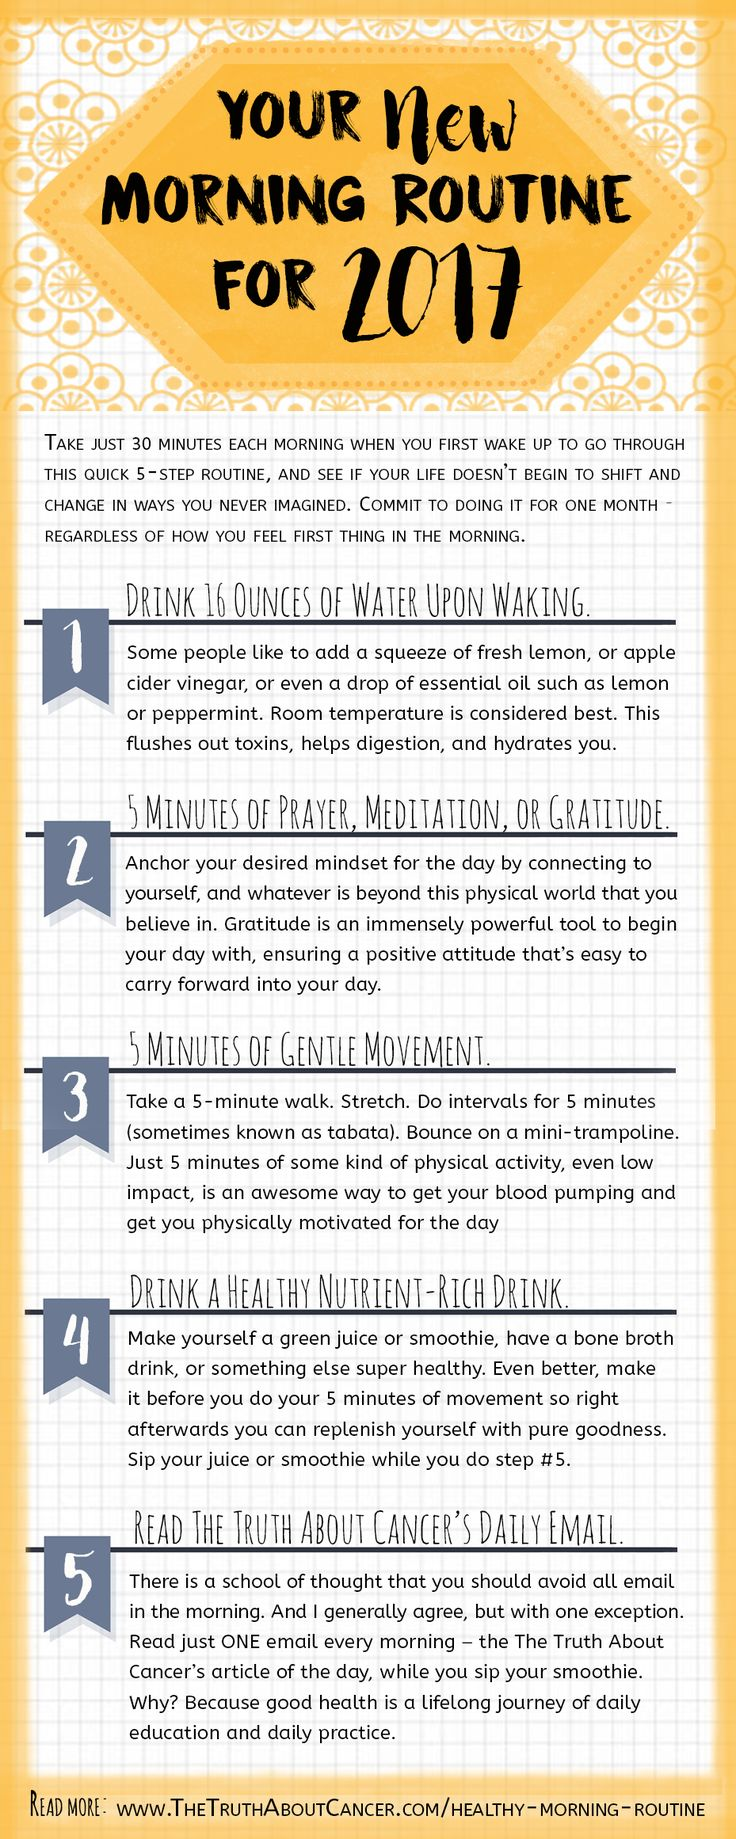 Transforming your health your new morning routine for 2017